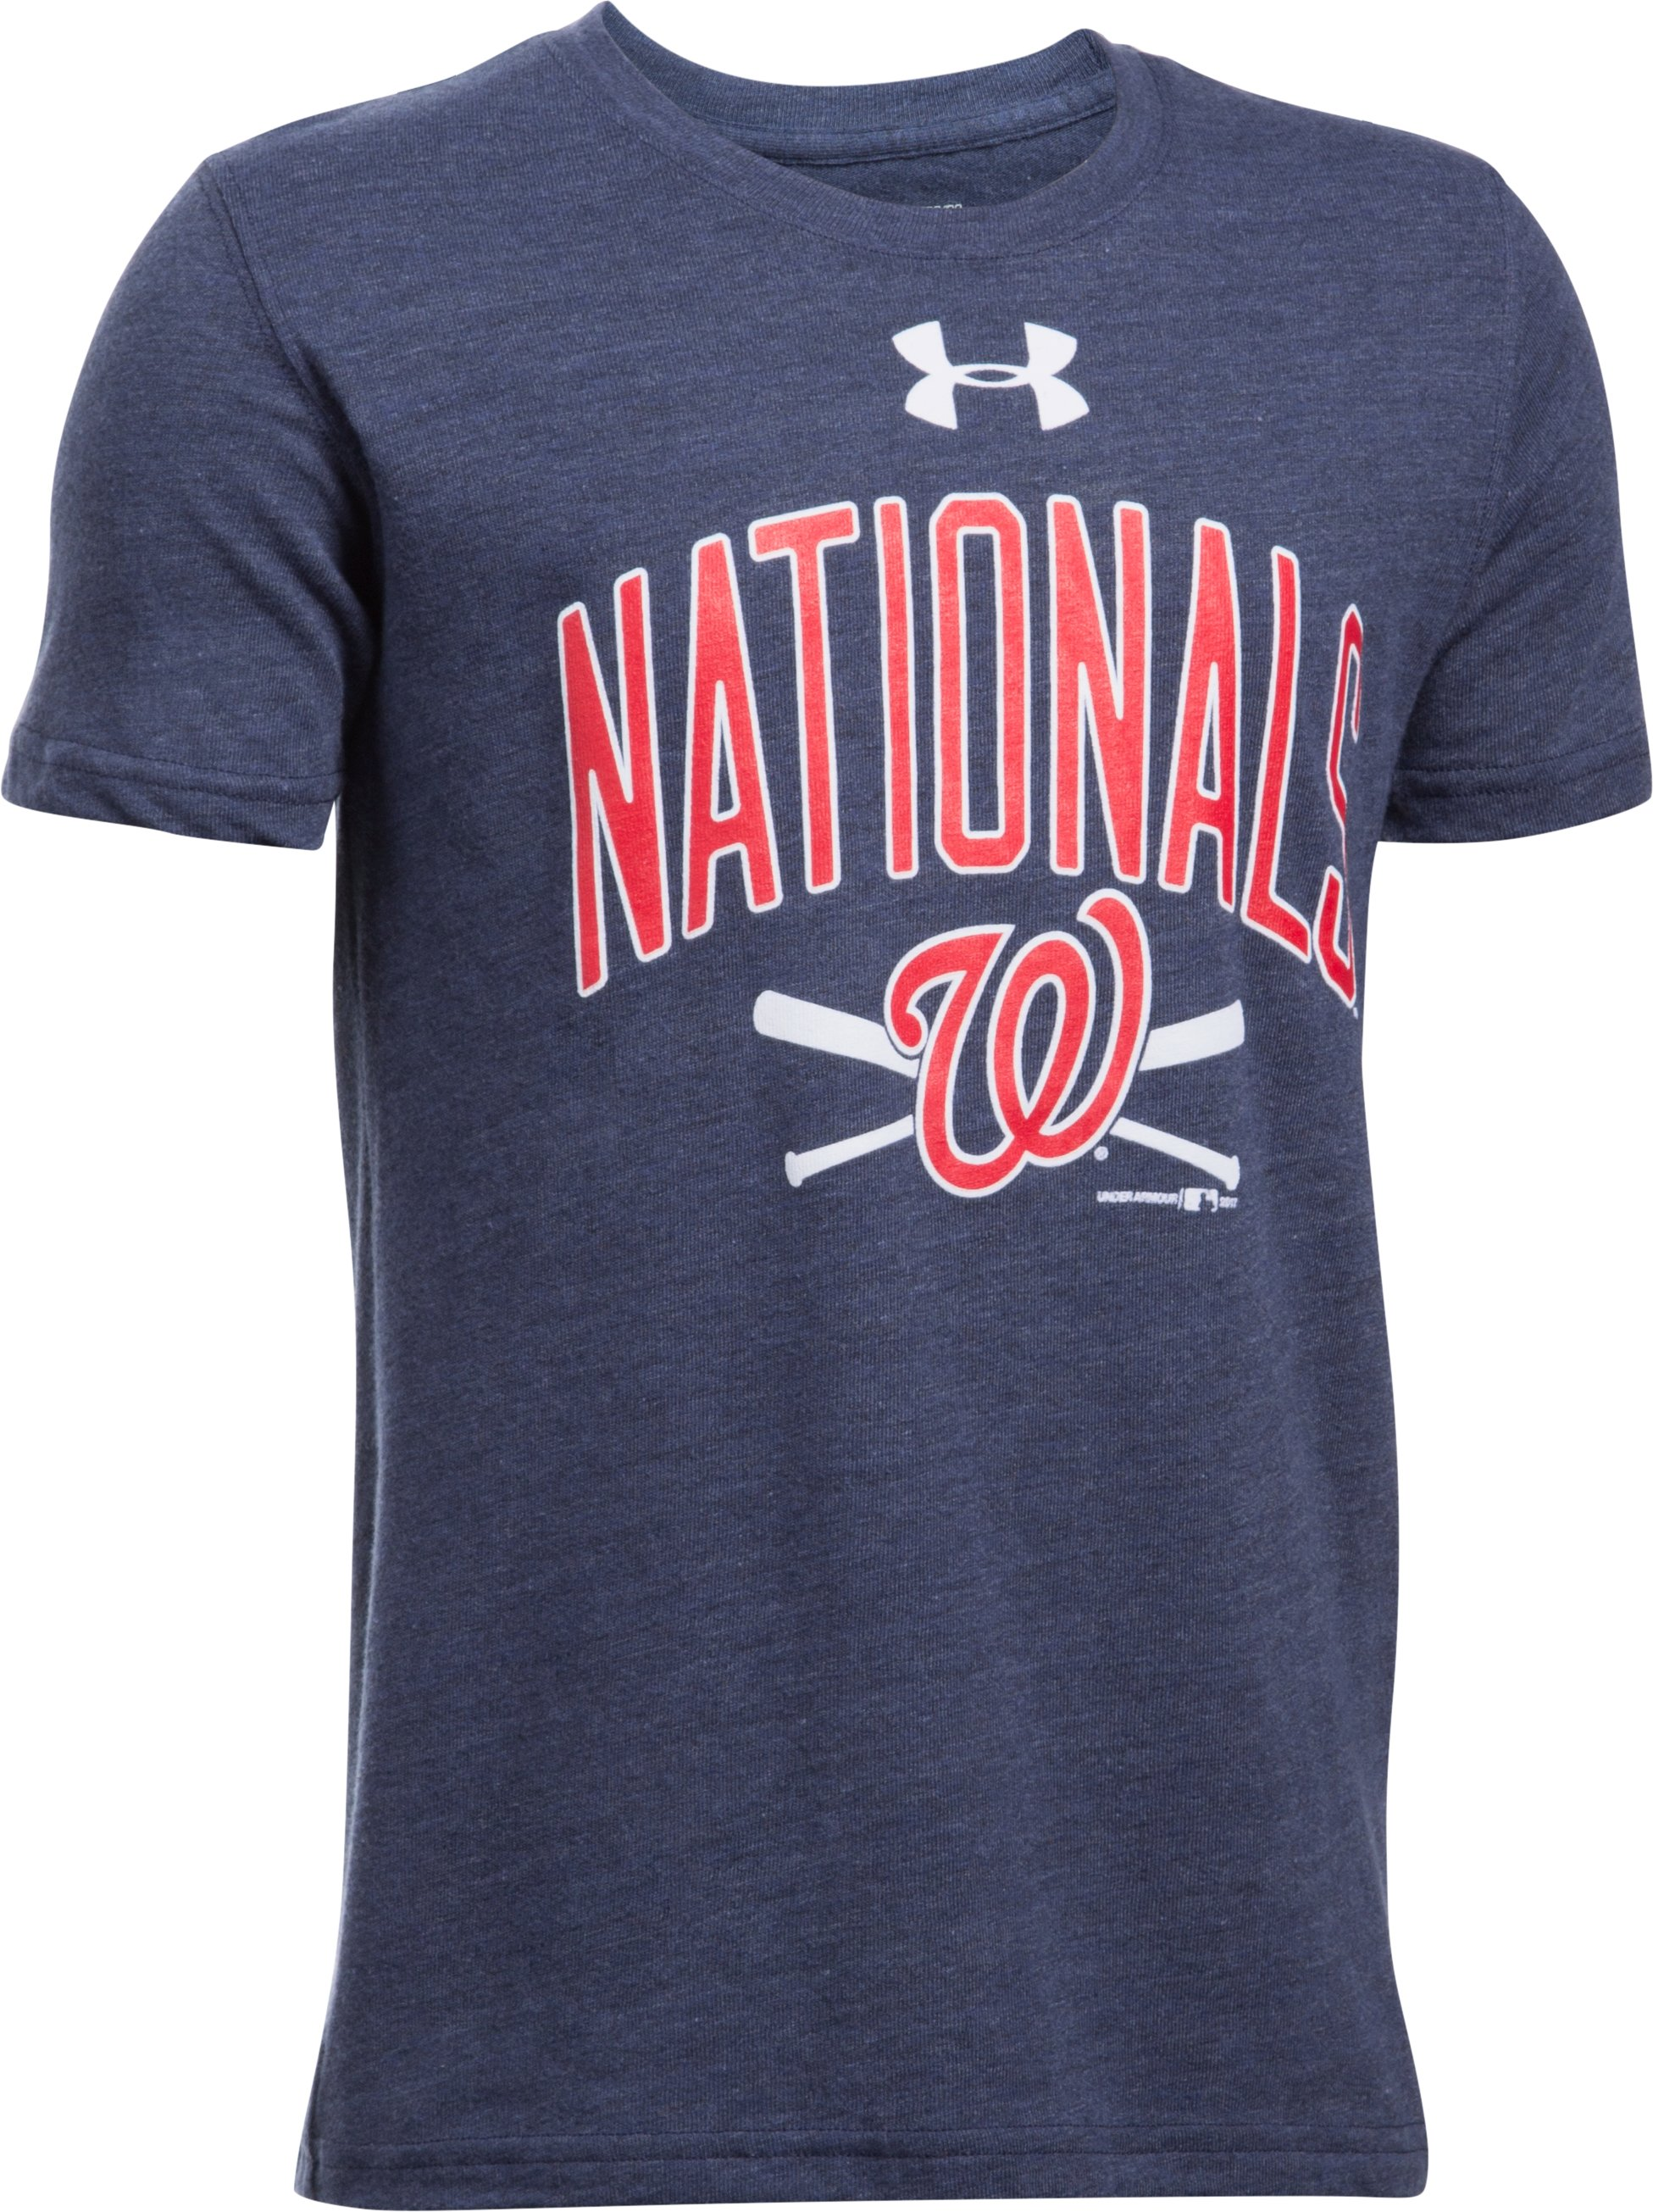 Boys' Washington Nationals Tri-Blend T-Shirt, Midnight Navy